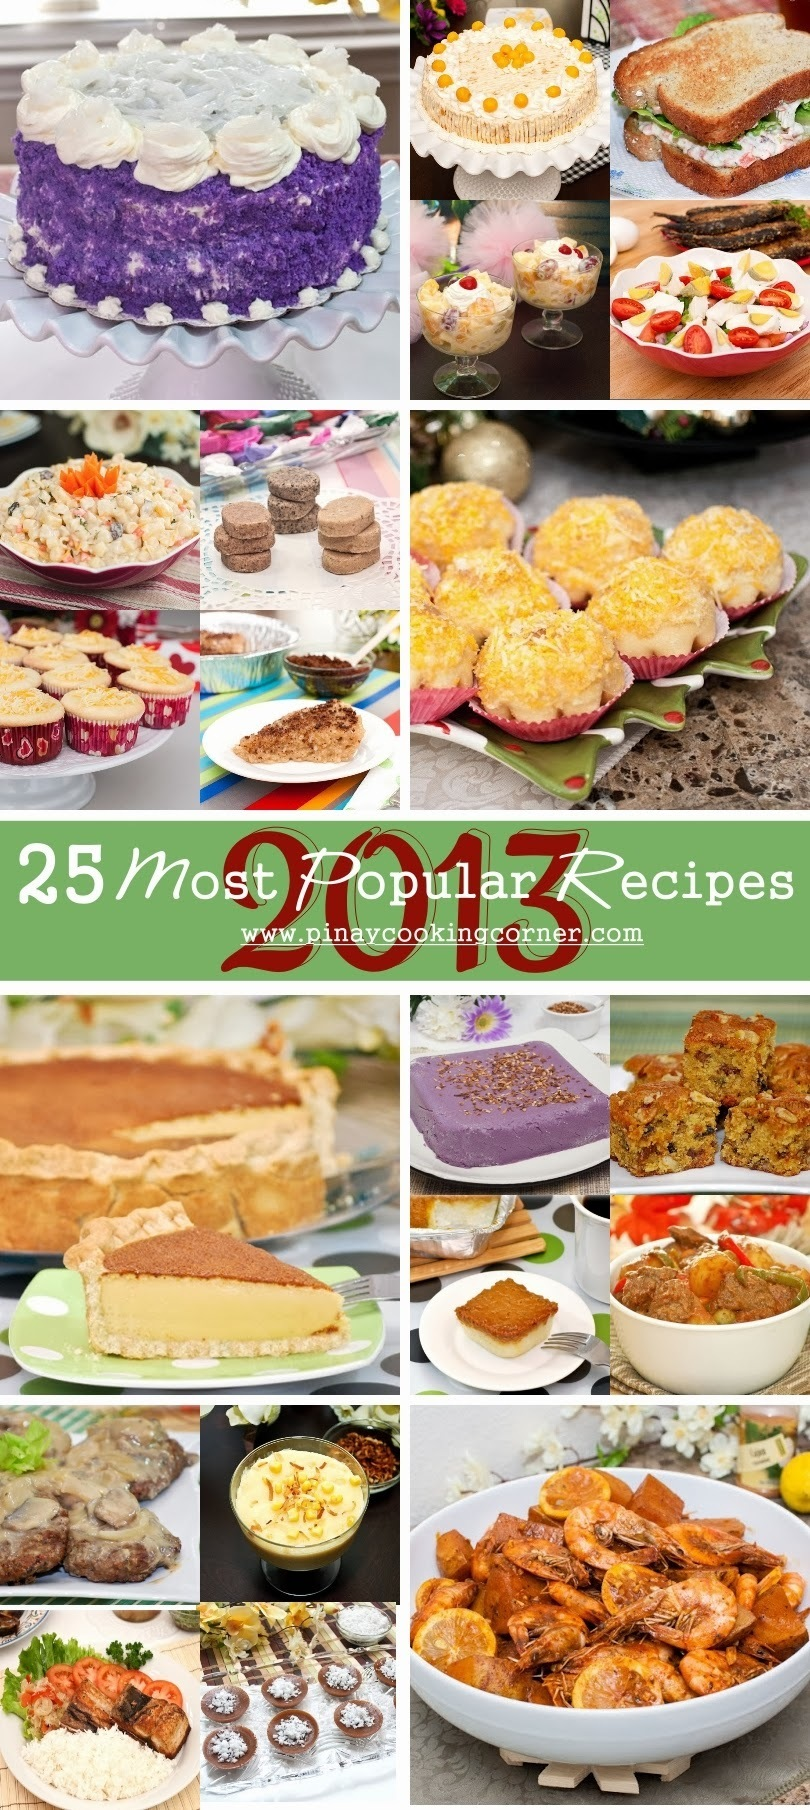 PiTCC's 25 Most Popular Recipes of 2013